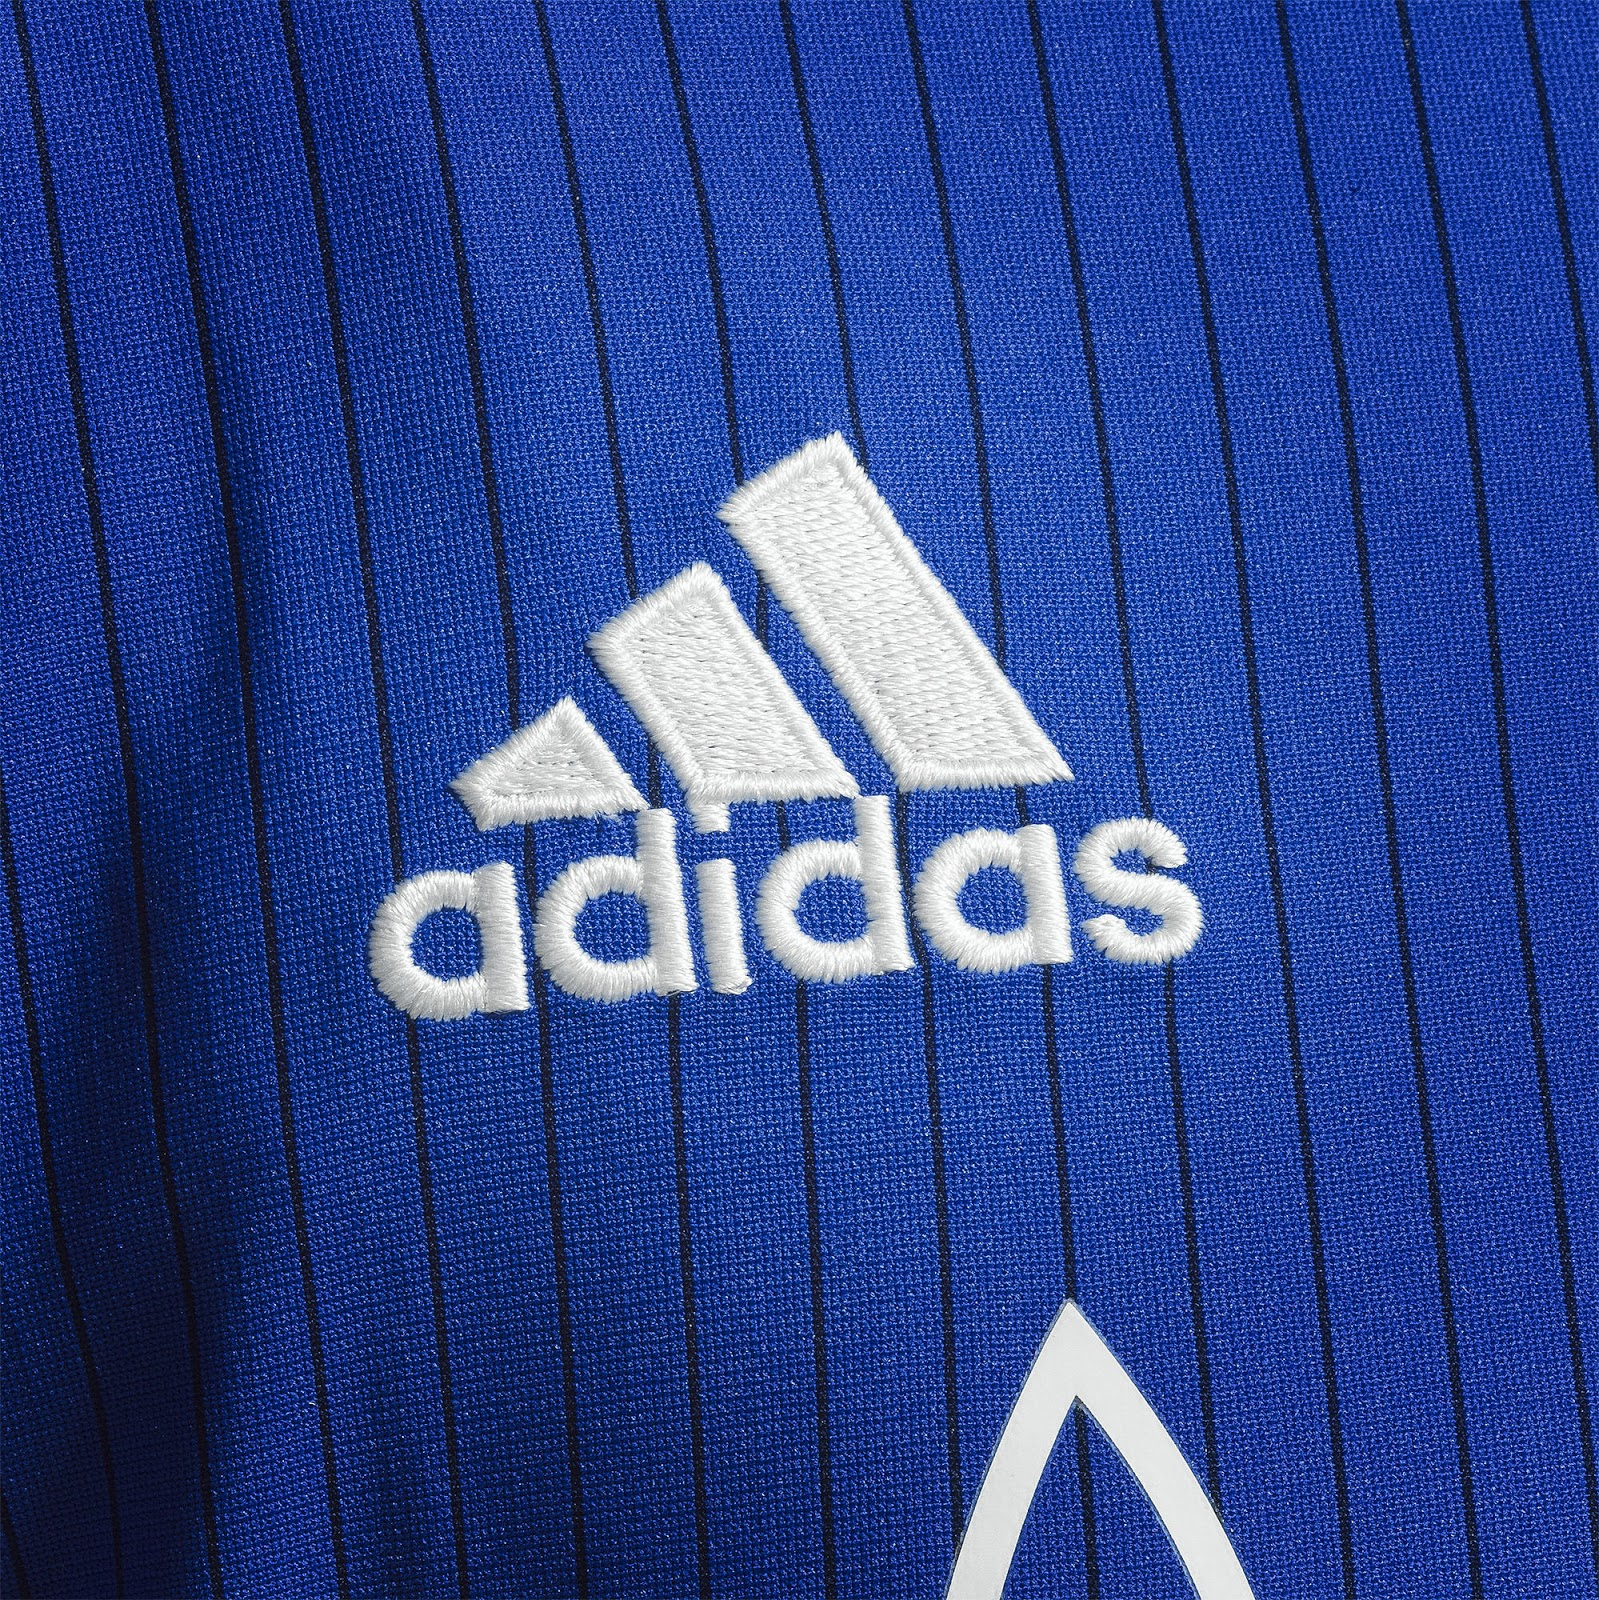 Schalke 04 14-15 Home Kit Released - Footy Headlines